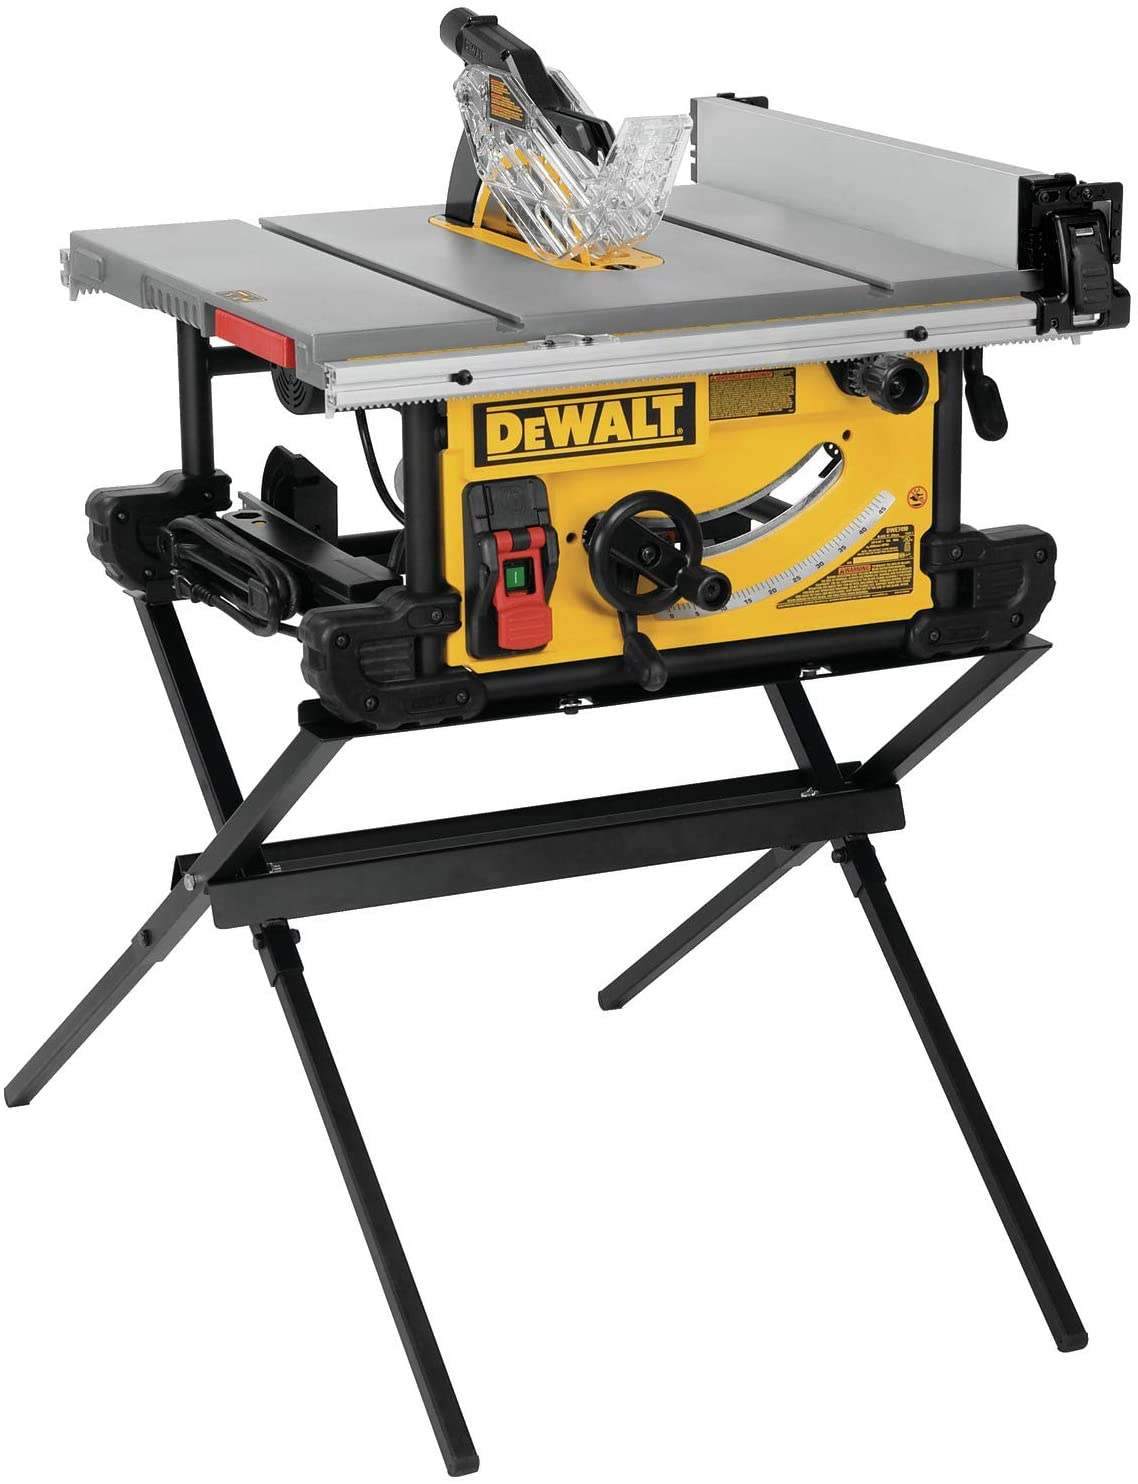 10. DEWALT 10 Inch Table Saw